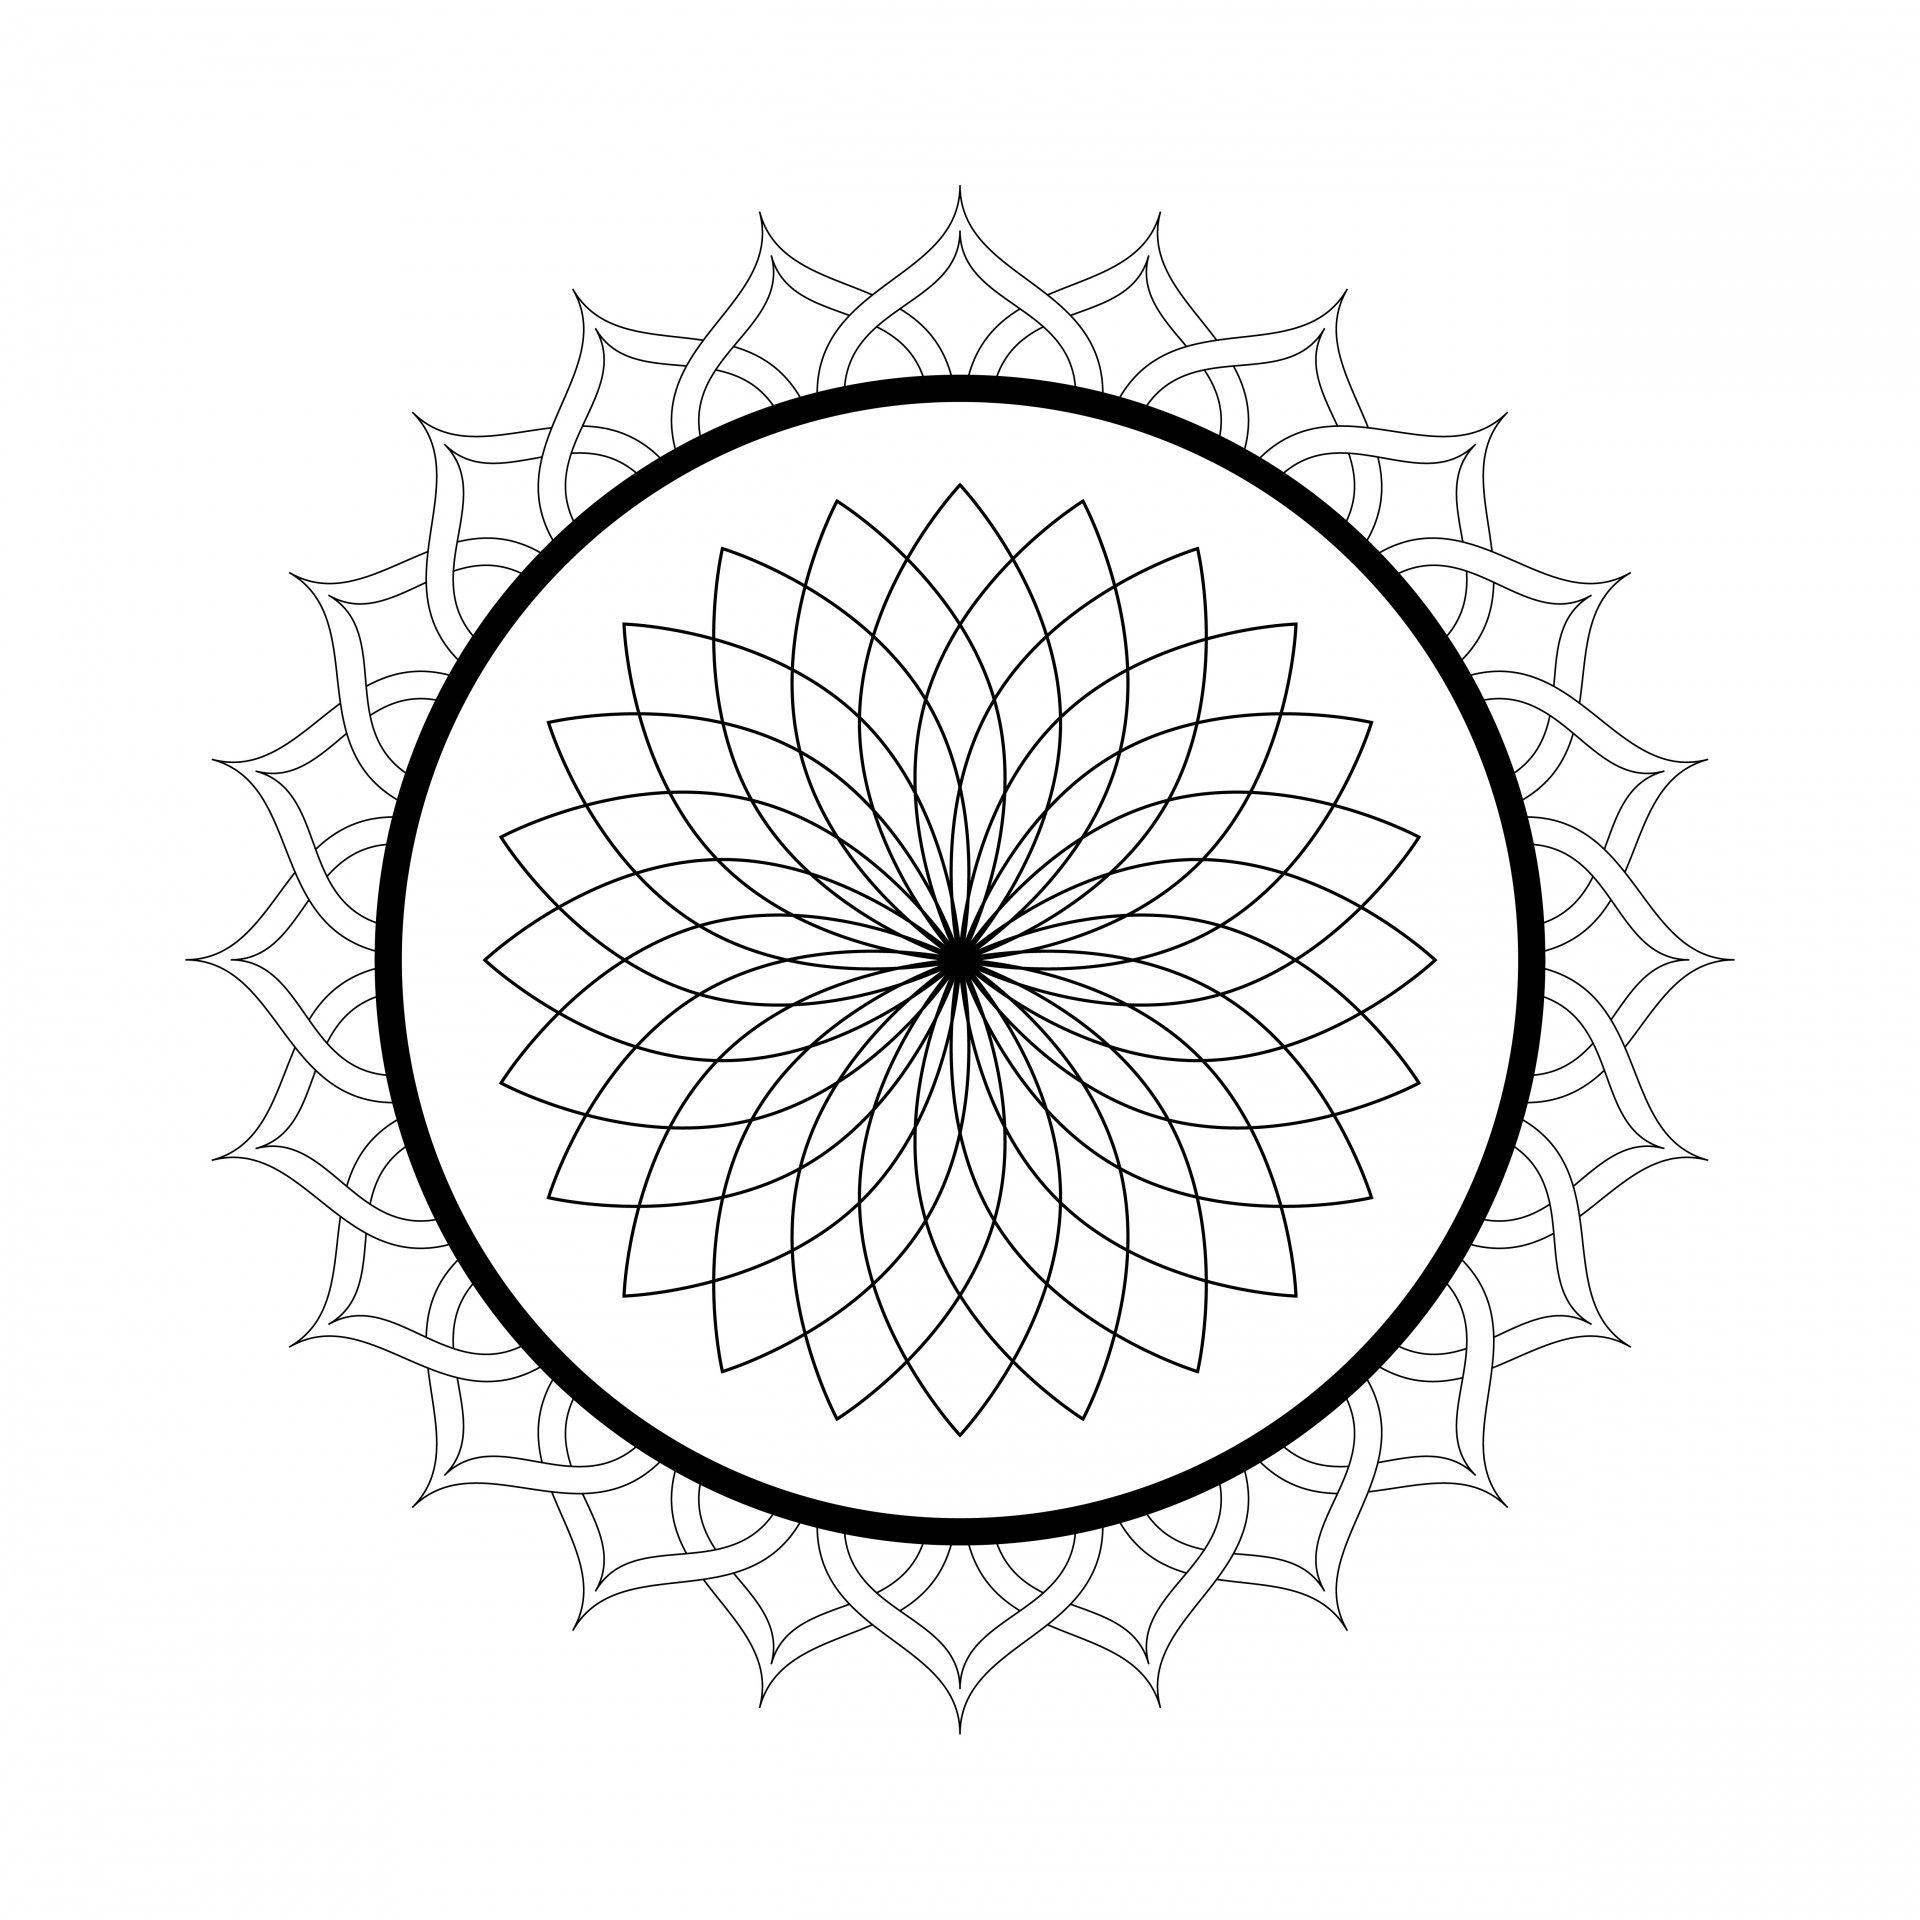 Free Printable Mandala Coloring Pages For Adults Best Coloring Pages For Kids Geometric Coloring Pages Mandala Coloring Pages Abstract Coloring Pages